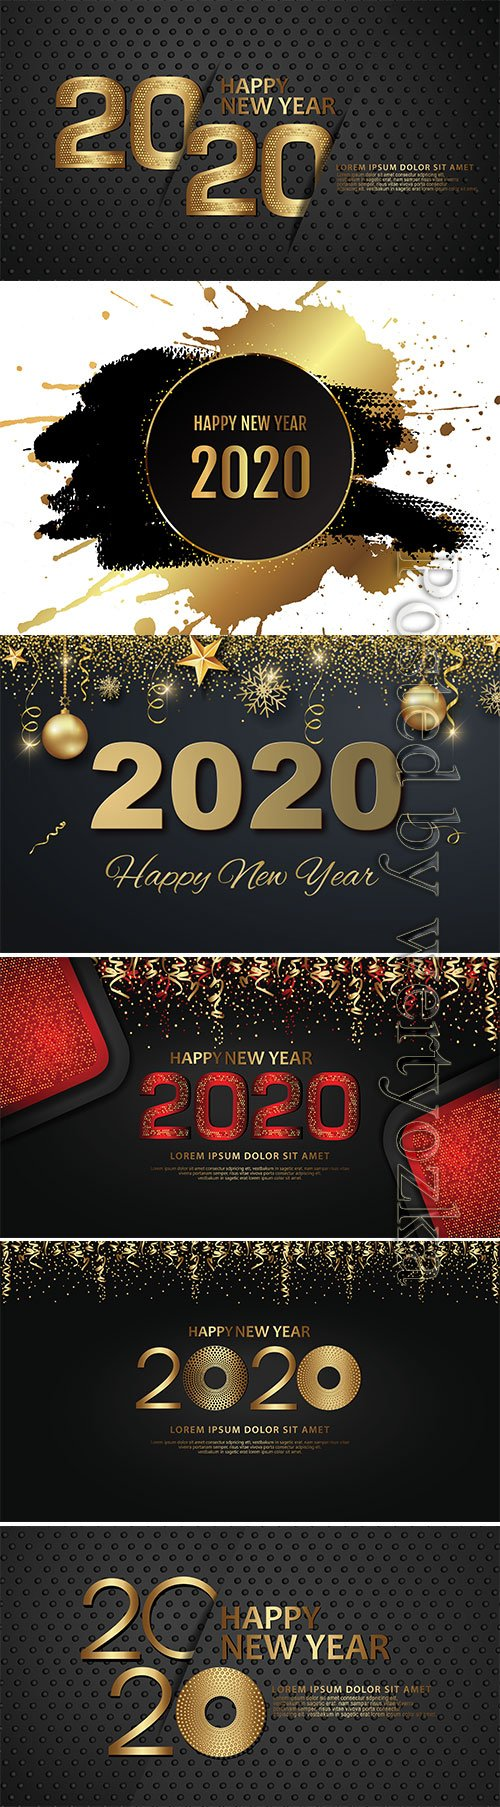 Gold Happy New Year vector background with snowflake